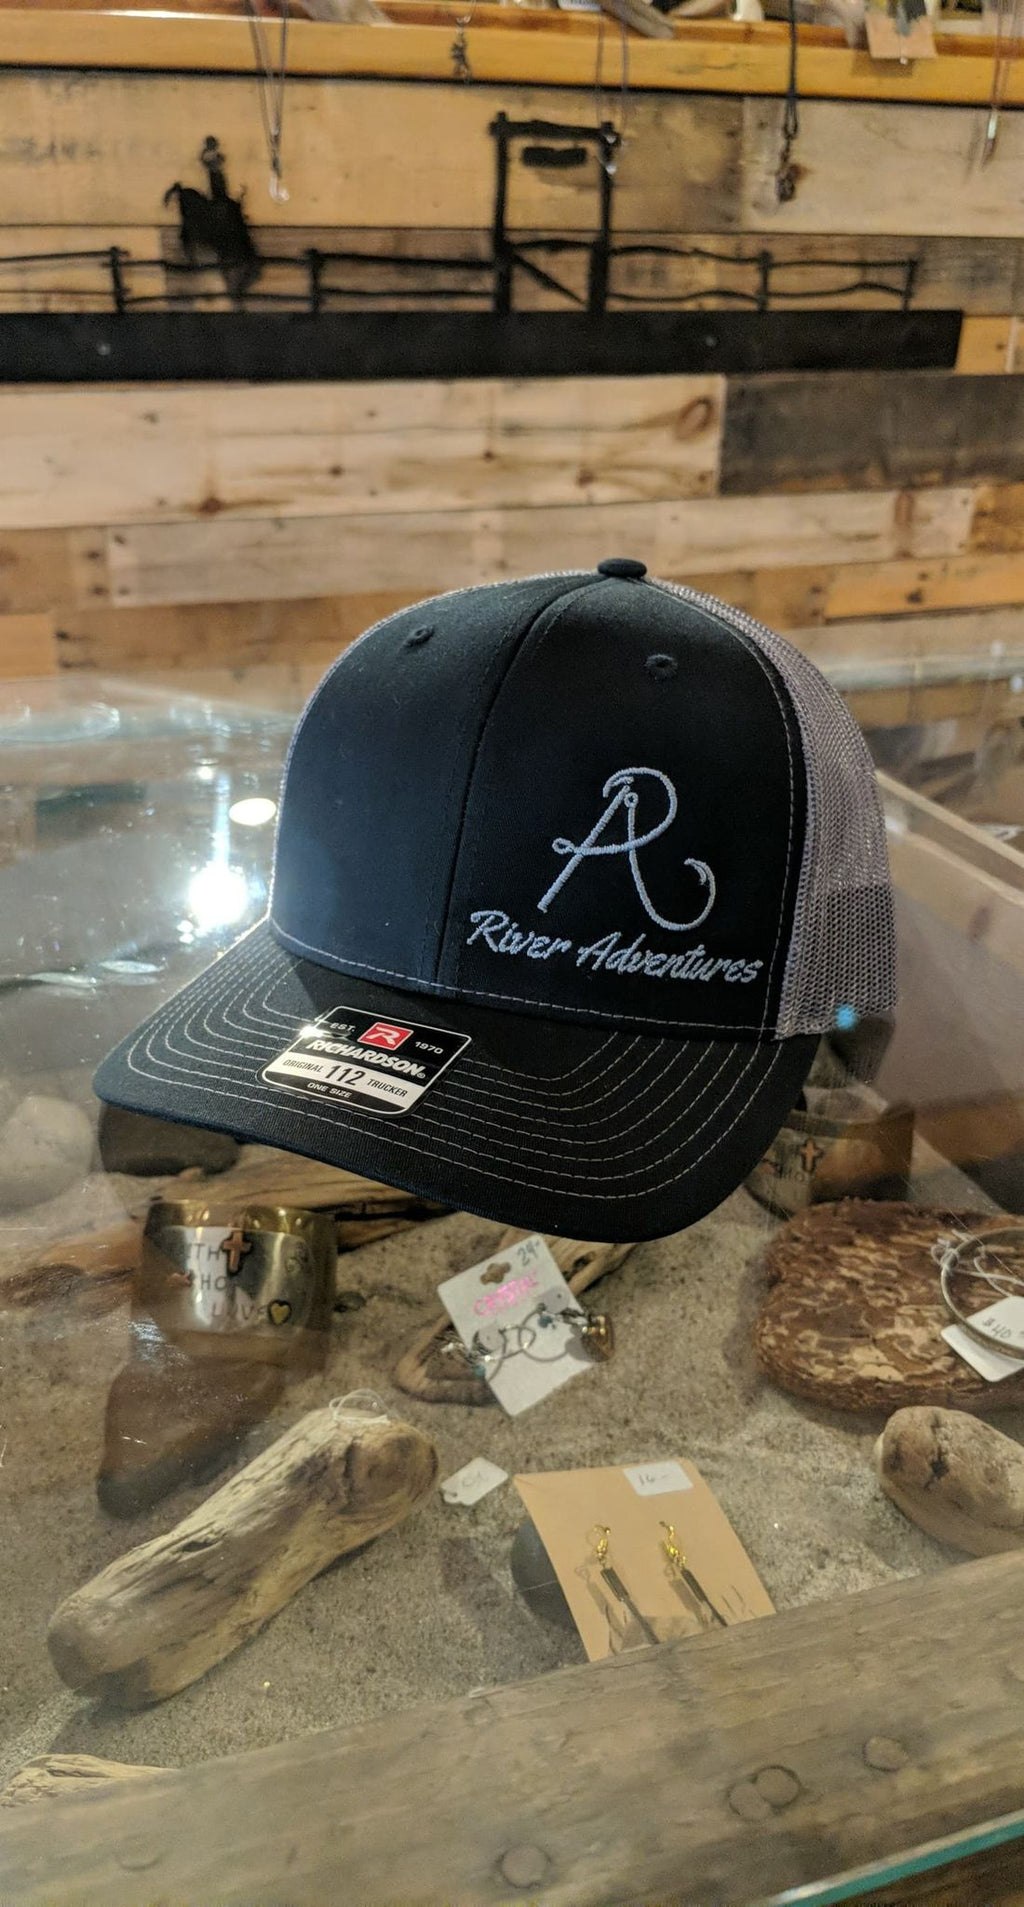 Fish Hook River Adventures Original cap